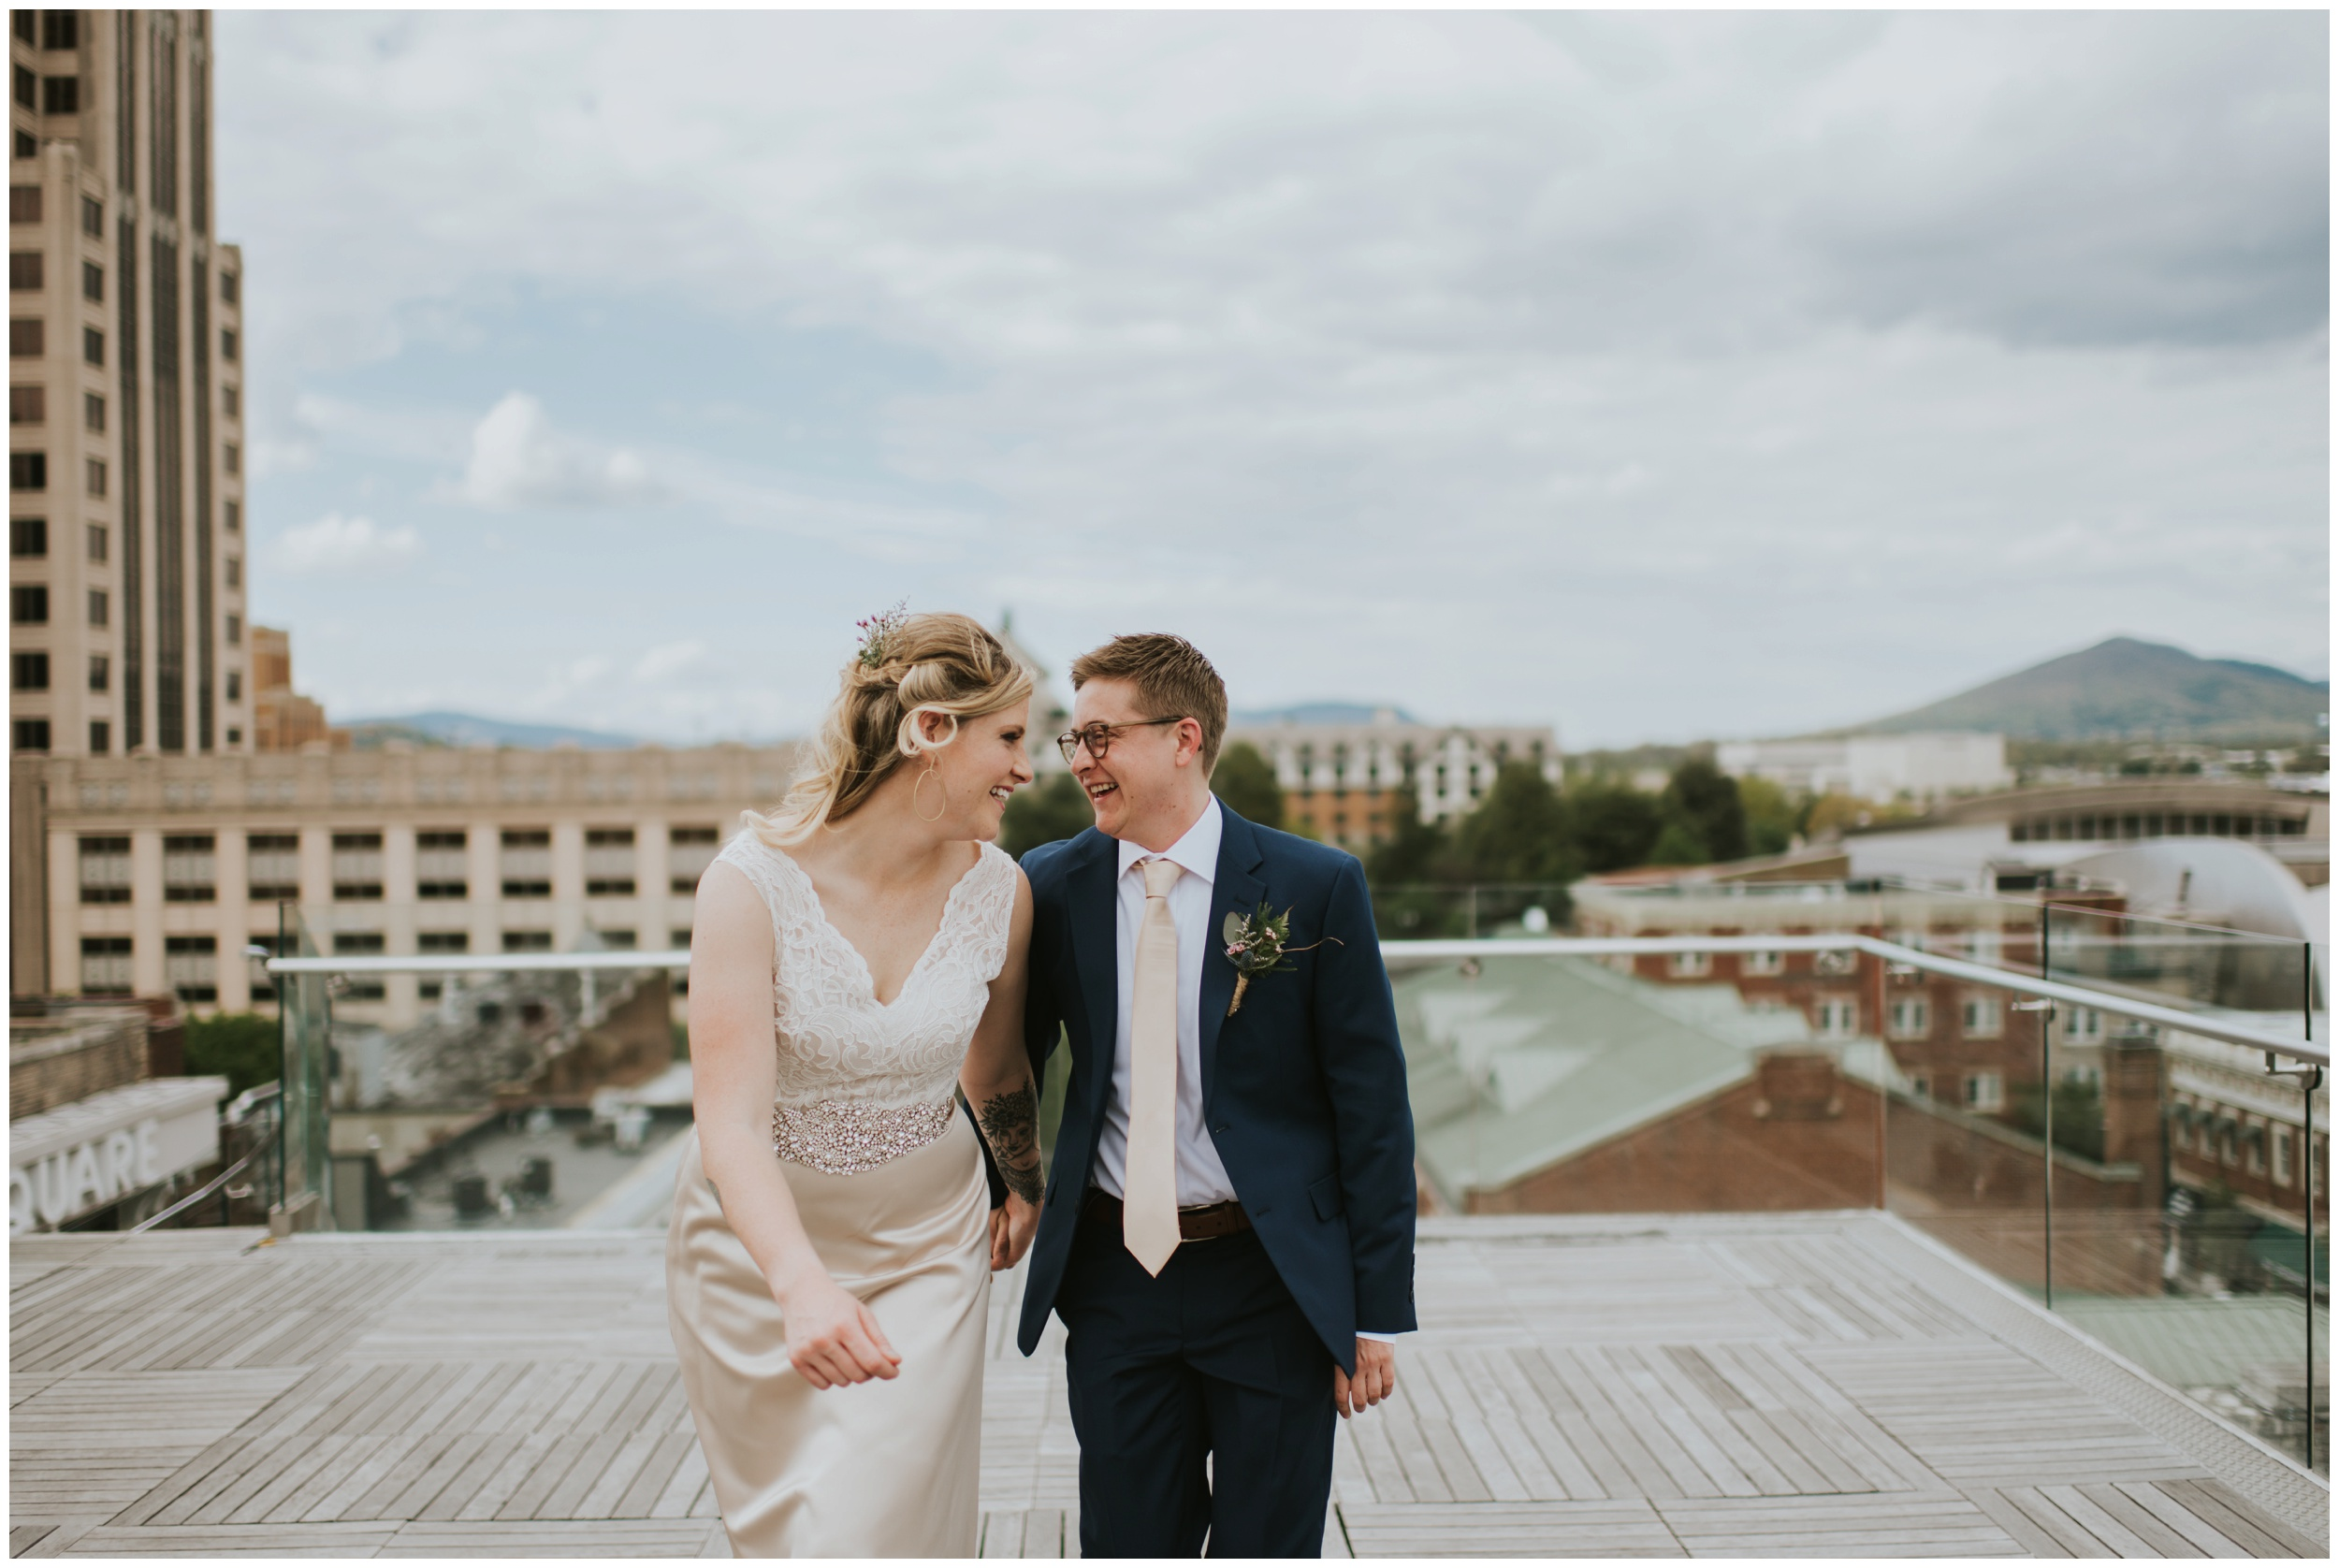 Couple laughing and walking on rooftop, downtown roanoke wedding  | www.riversandroadsphotography.com